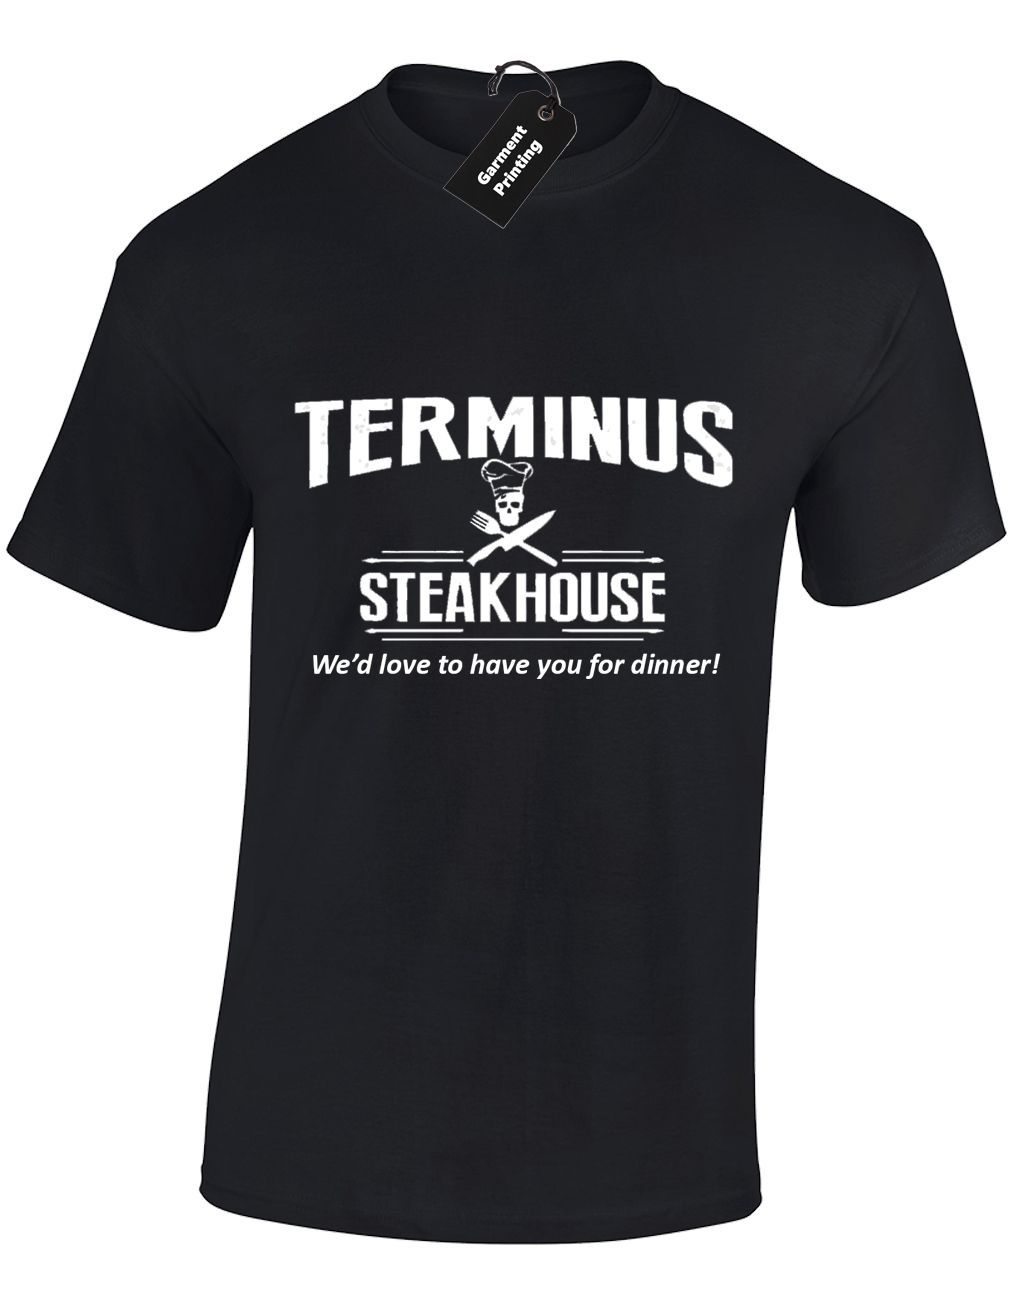 Terminus Steakhouse T Shirt Top Mens Walking Dead Funny Walking Dead Zombie Rick